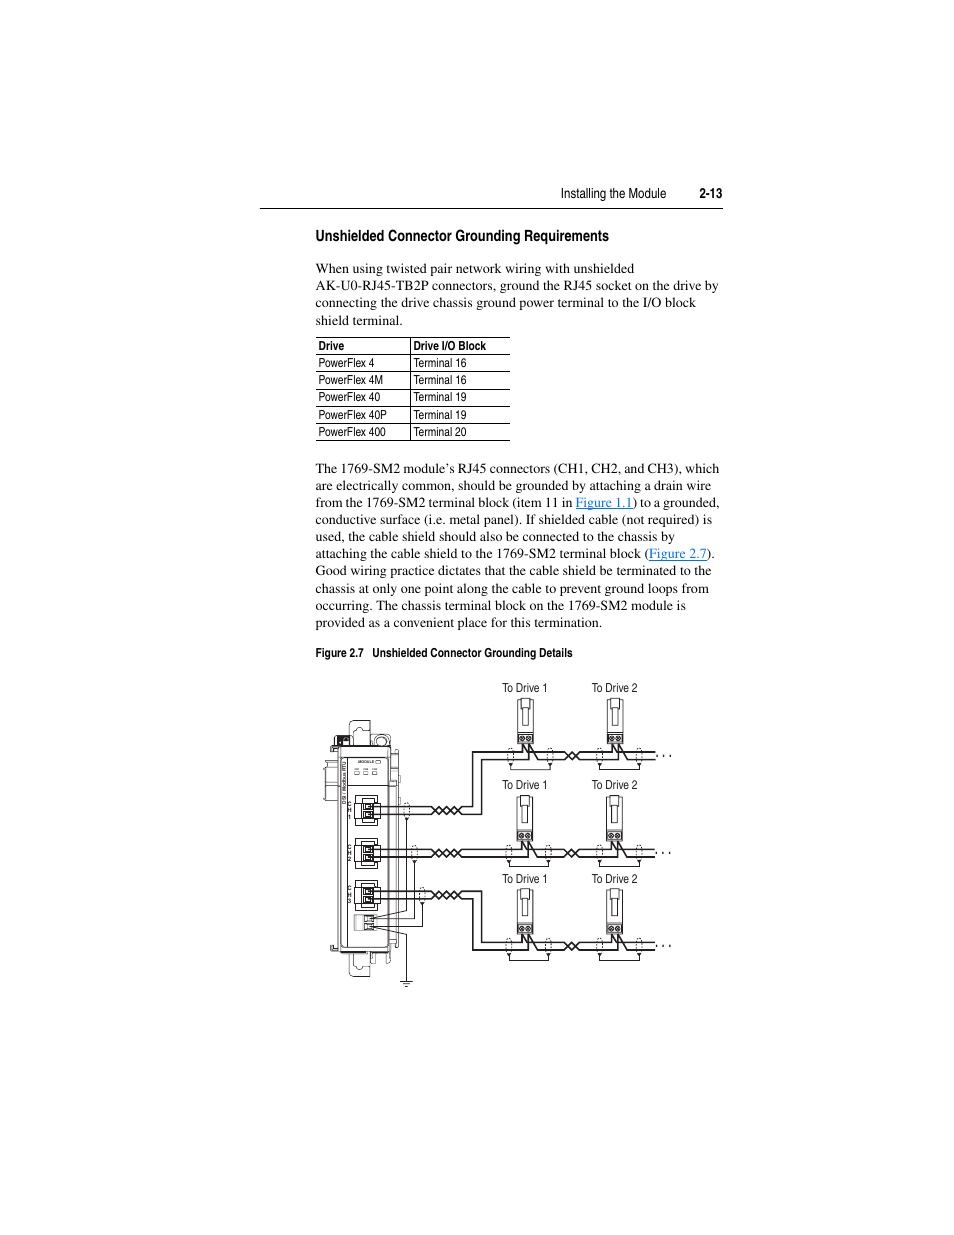 unshielded connector grounding requirements | rockwell automation 1769-sm2  compact i/o dsi/modbus communication module user manual | page 35 / 204